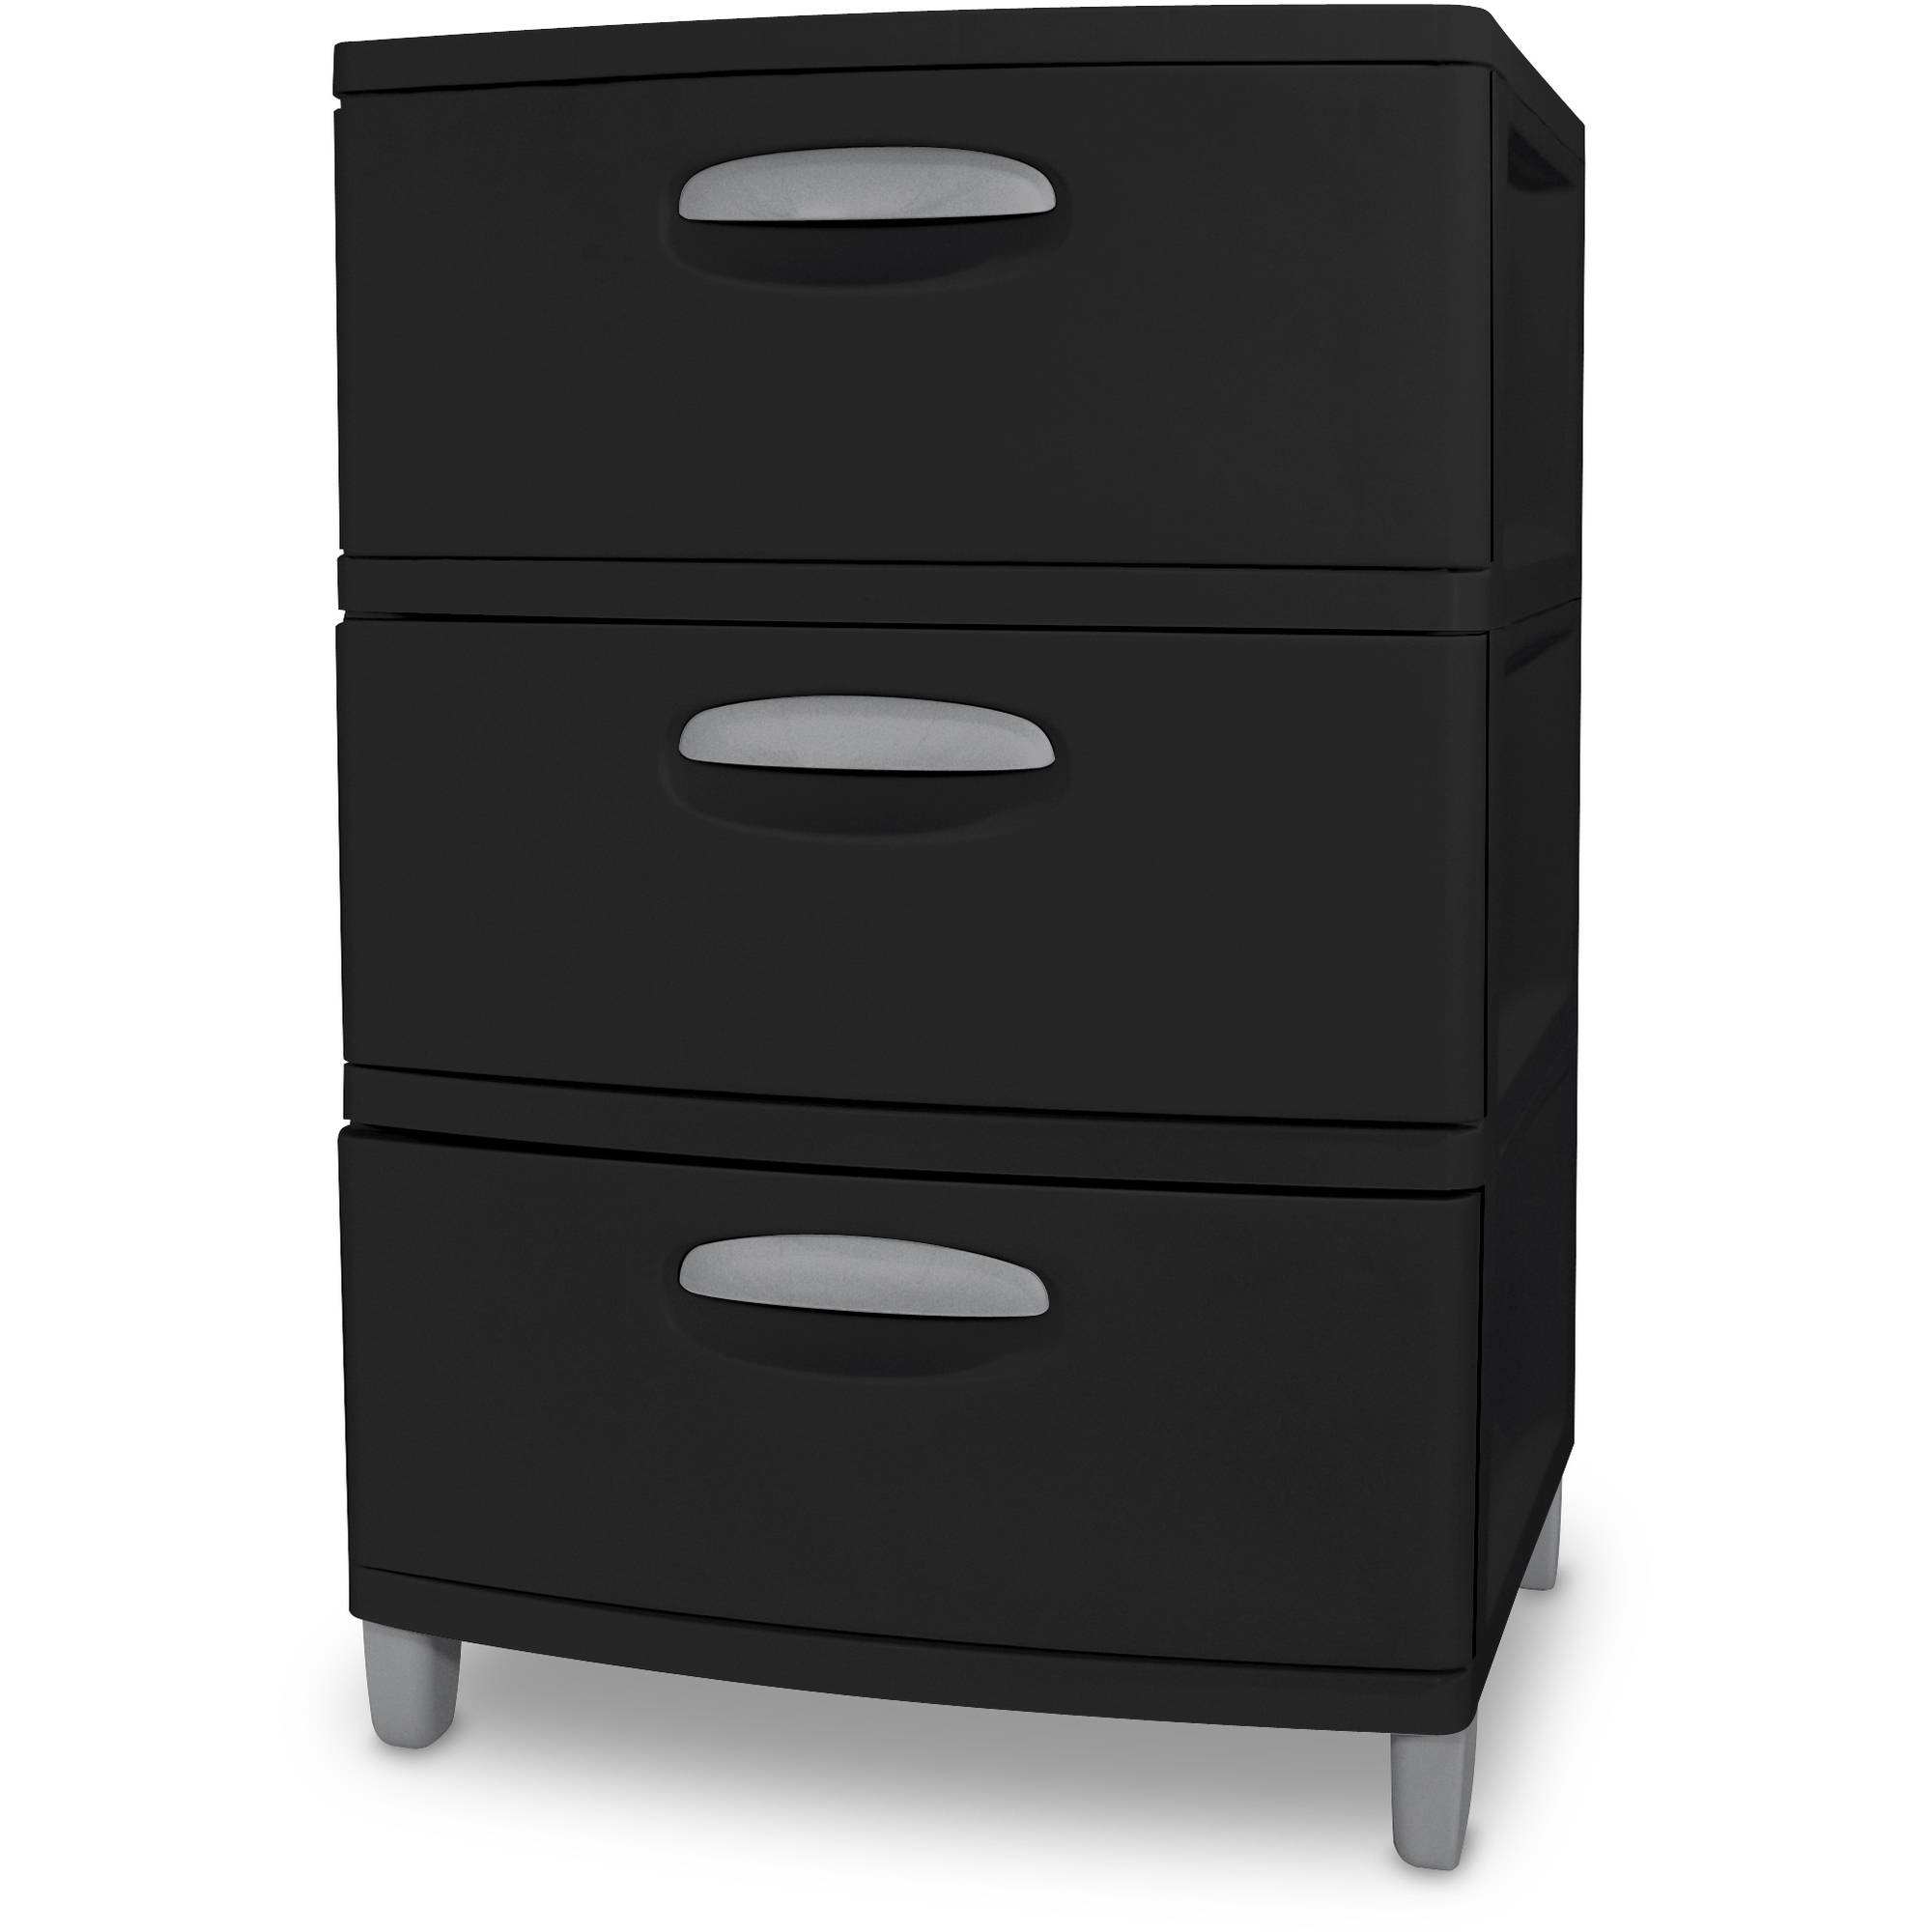 3 drawer plastic storage organizer unit garage bedroom cabinet box black ebay. Black Bedroom Furniture Sets. Home Design Ideas